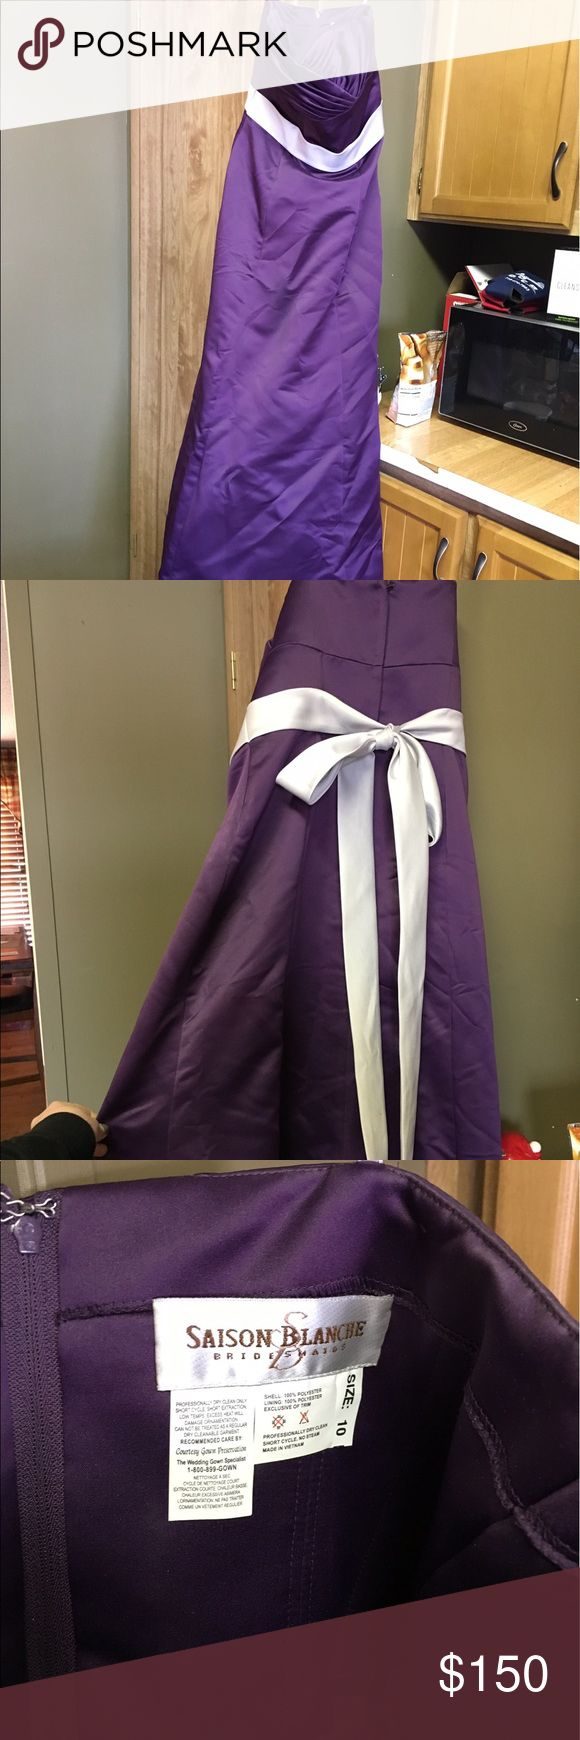 Saison Blanche purple bridesmaid dress worn once Beautiful purple floor length gown. Has small train. Ties in back with a sweetheart neckline. Dress is a size 10 but fits at 6/8. Worn once for a wedding. Would make a gorgeous prom dress saison blanche Dresses Prom